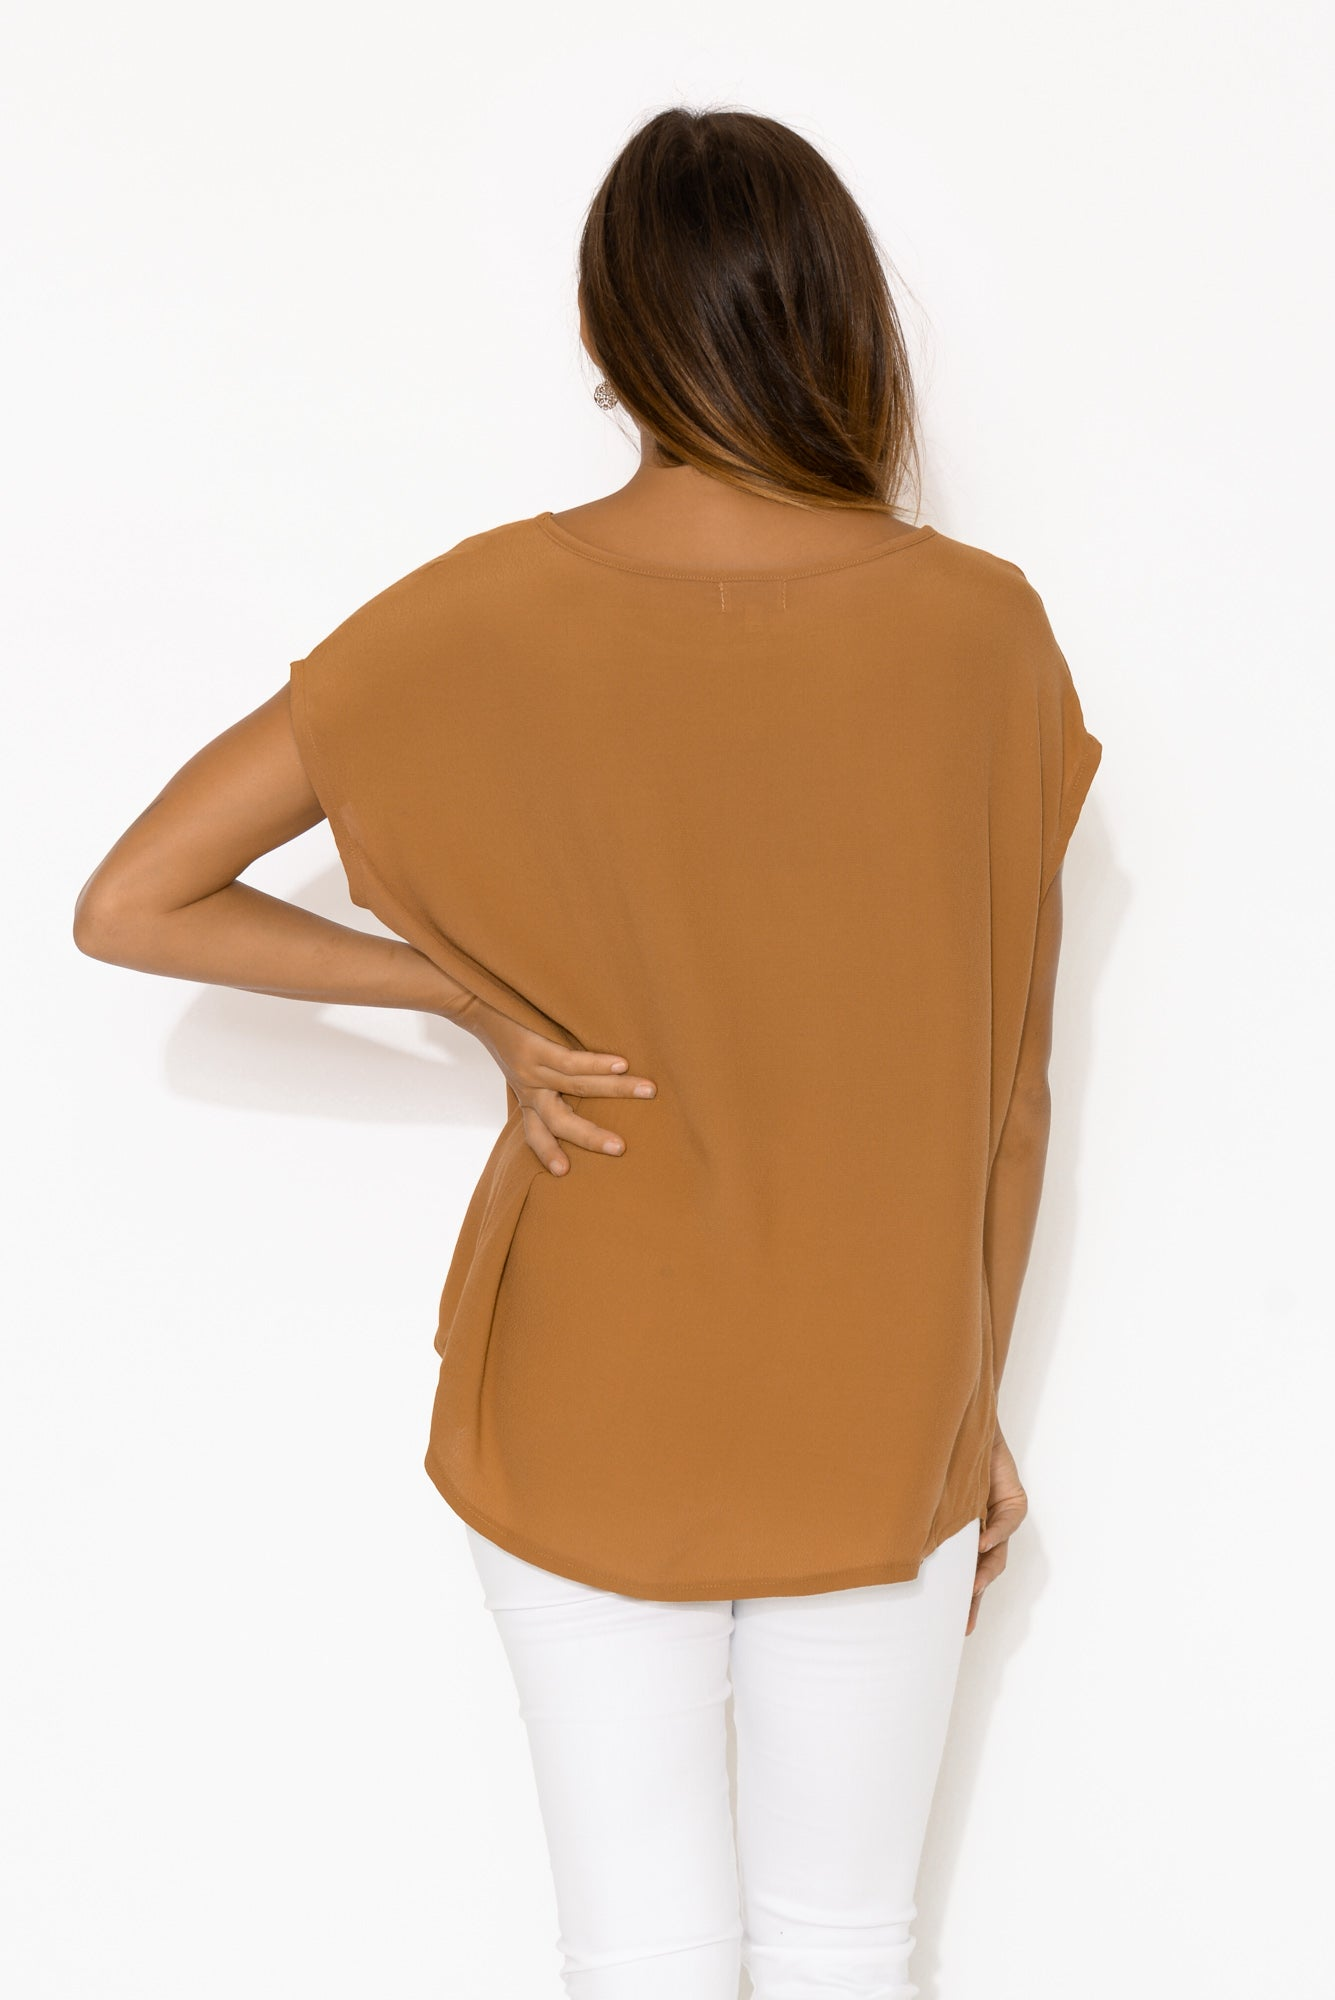 Essi Tan Shell Top